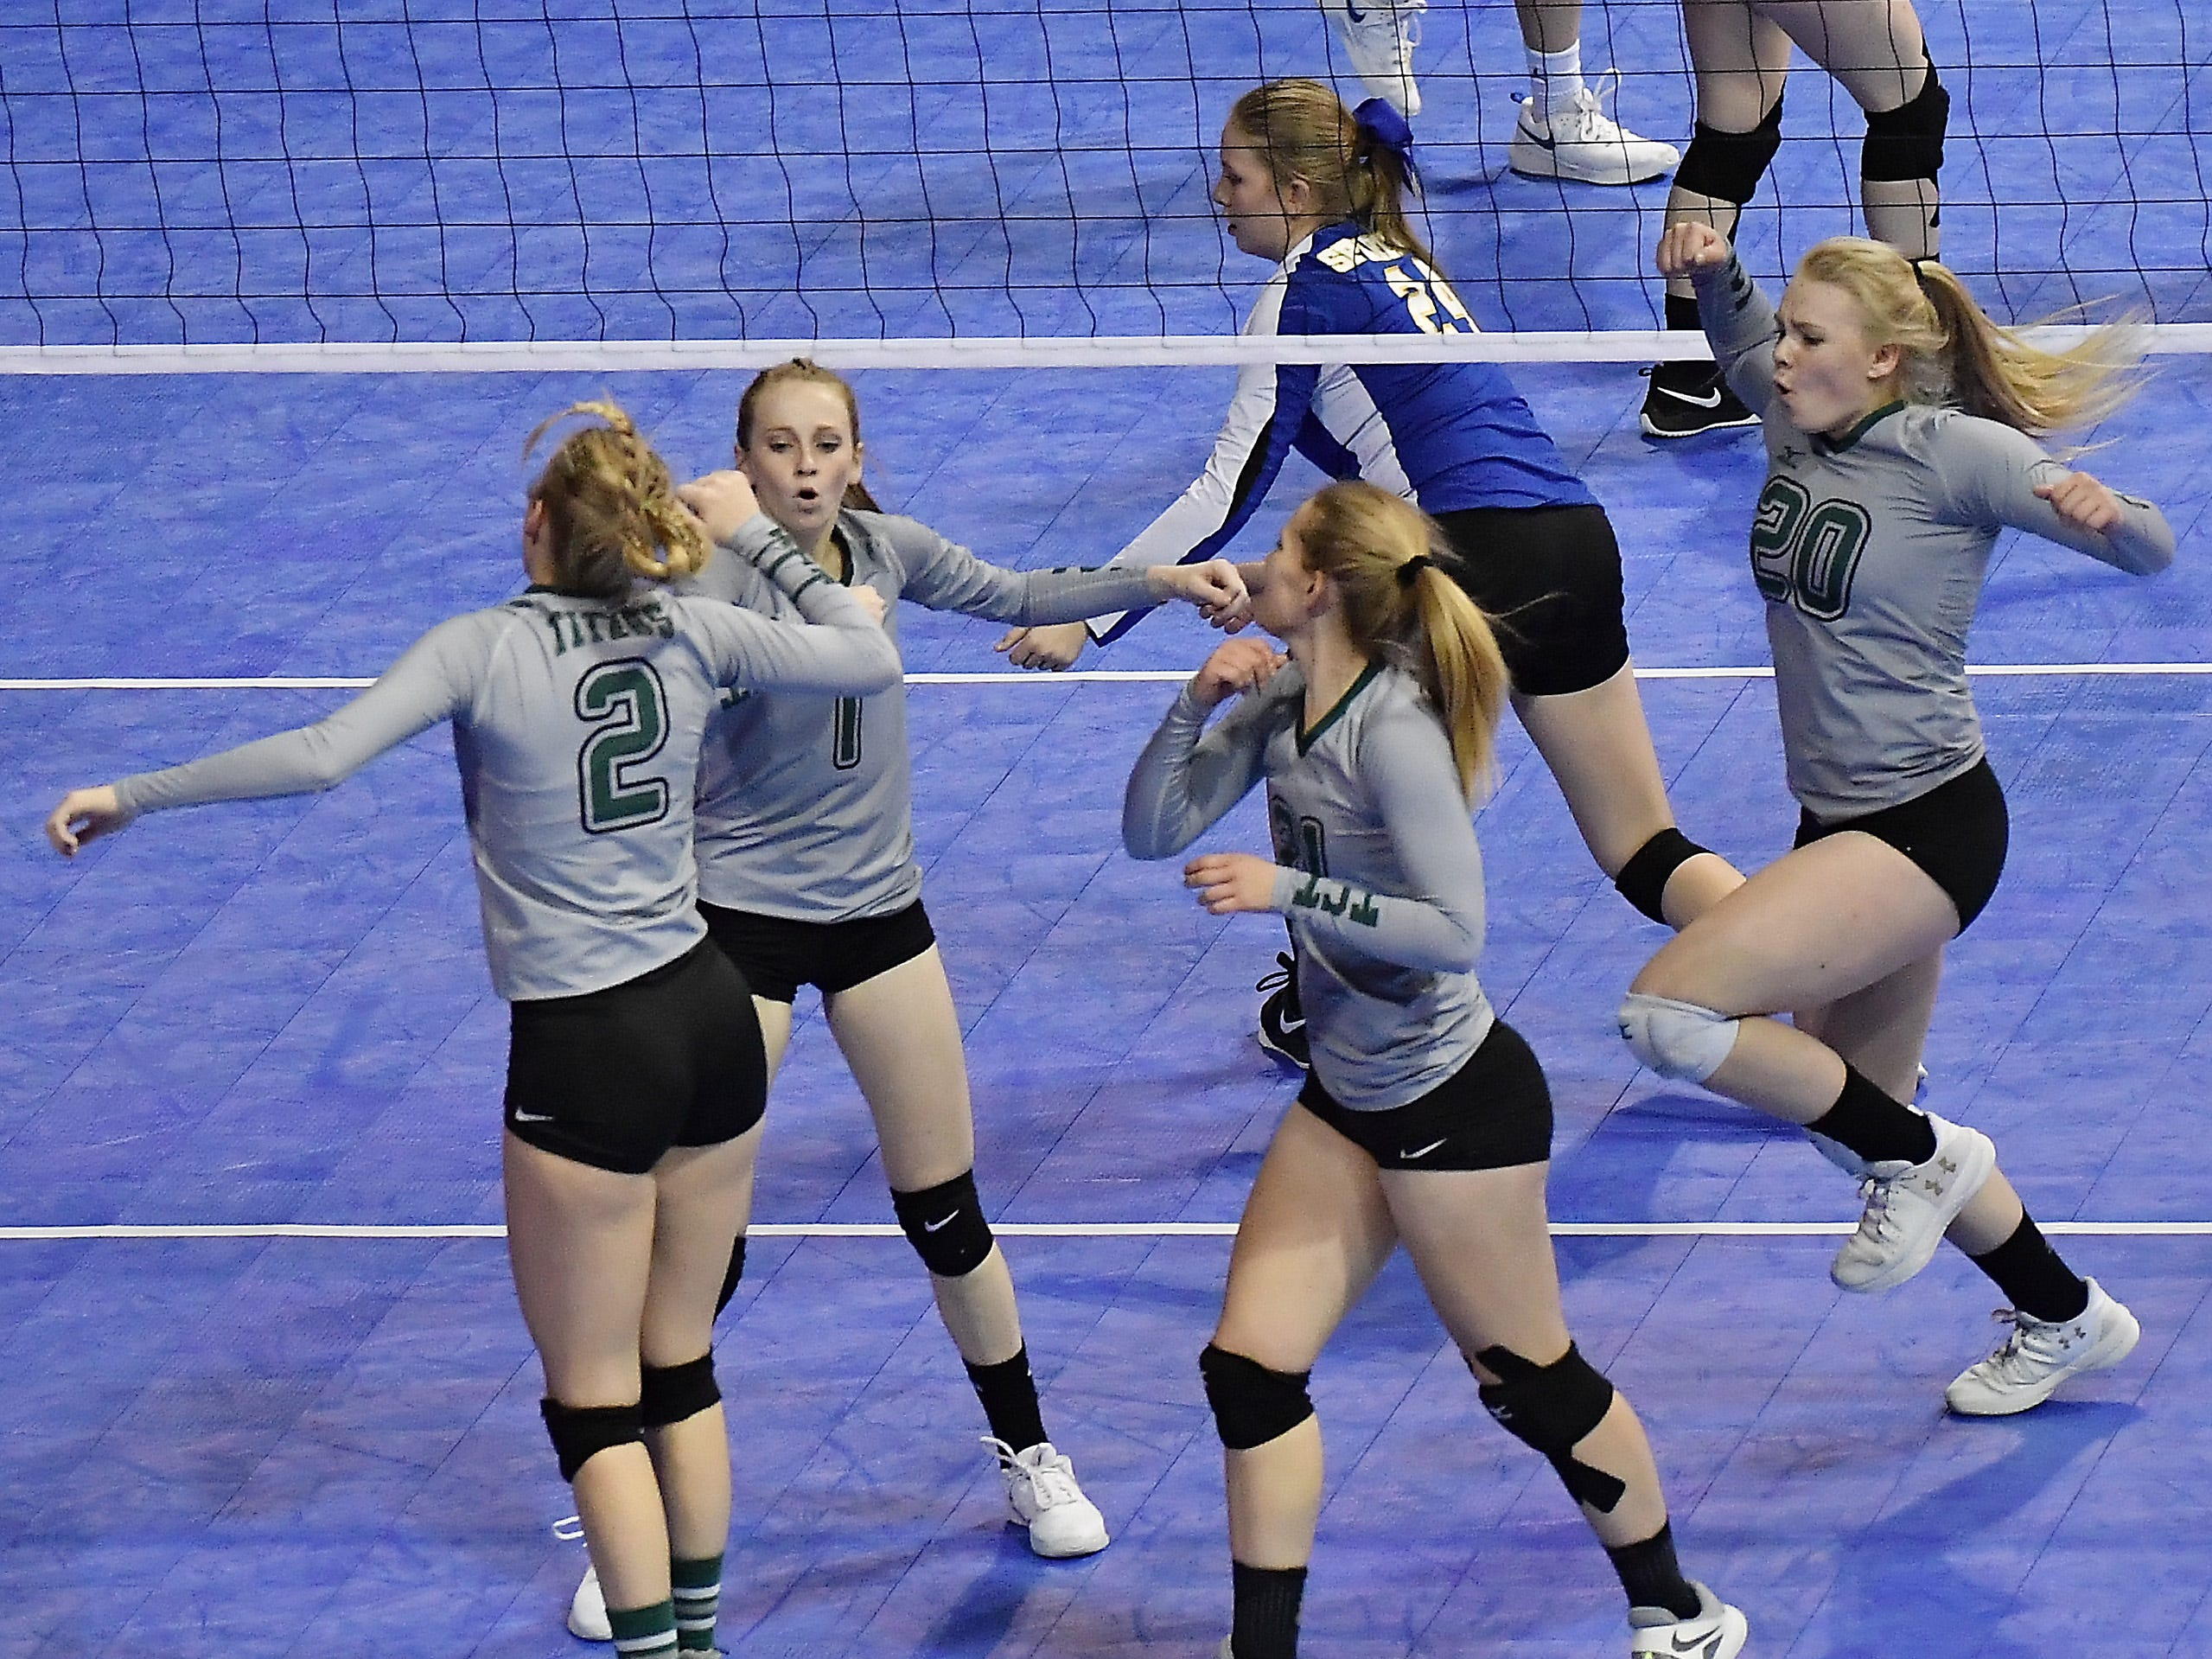 The Tri-Cities Titans celebrate a point during a match with Scobey at the All-Class State Volleyball Tournament at the Brick Breeden Fieldhouse in Bozeman Friday.